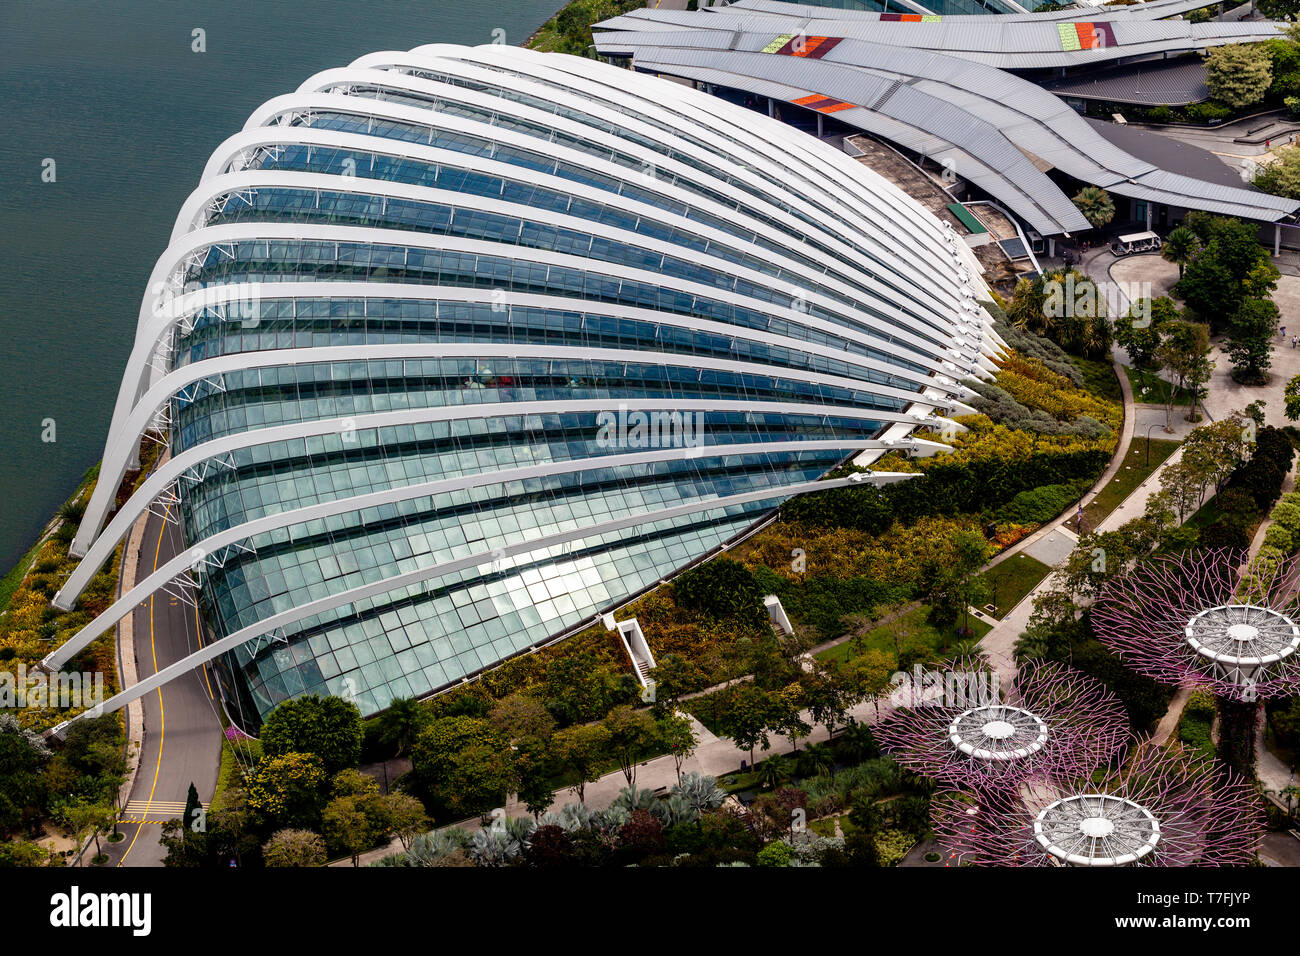 The Flower Dome and Silver Garden At The Gardens By The Bay Nature Park, Singapore, South East Asia - Stock Image